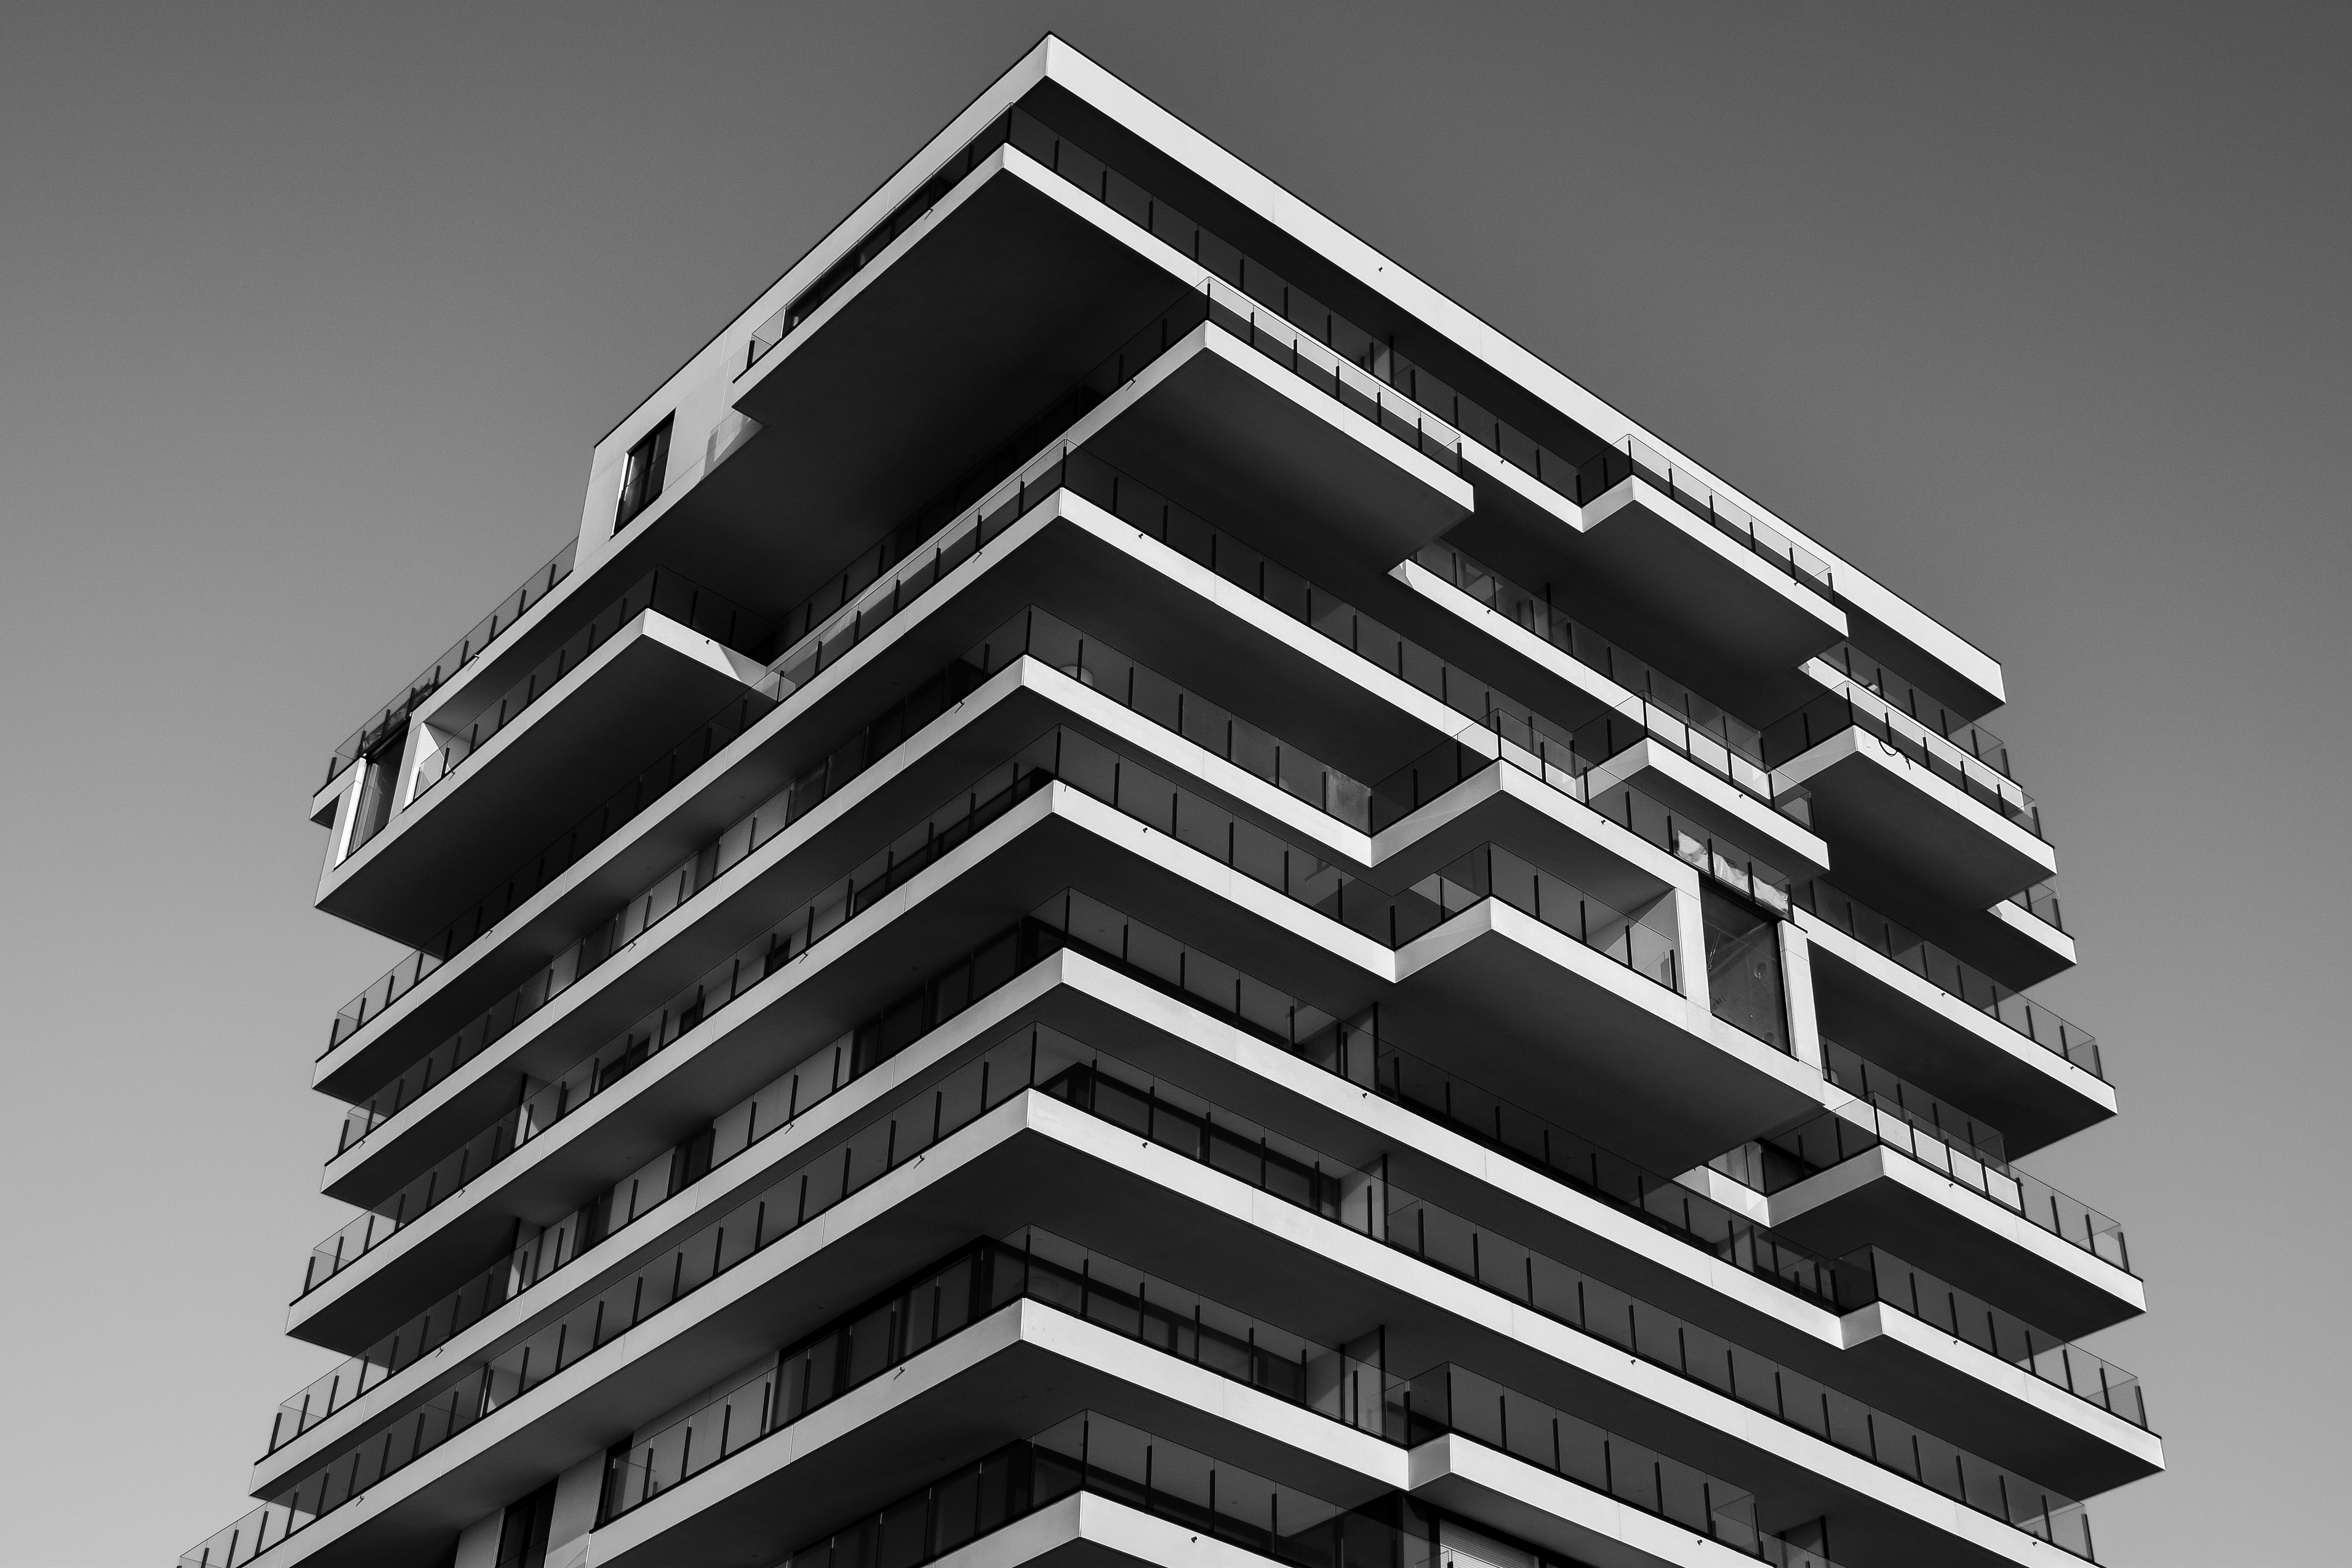 Black And White Building Construction : Grayscale photo of concrete building · free stock